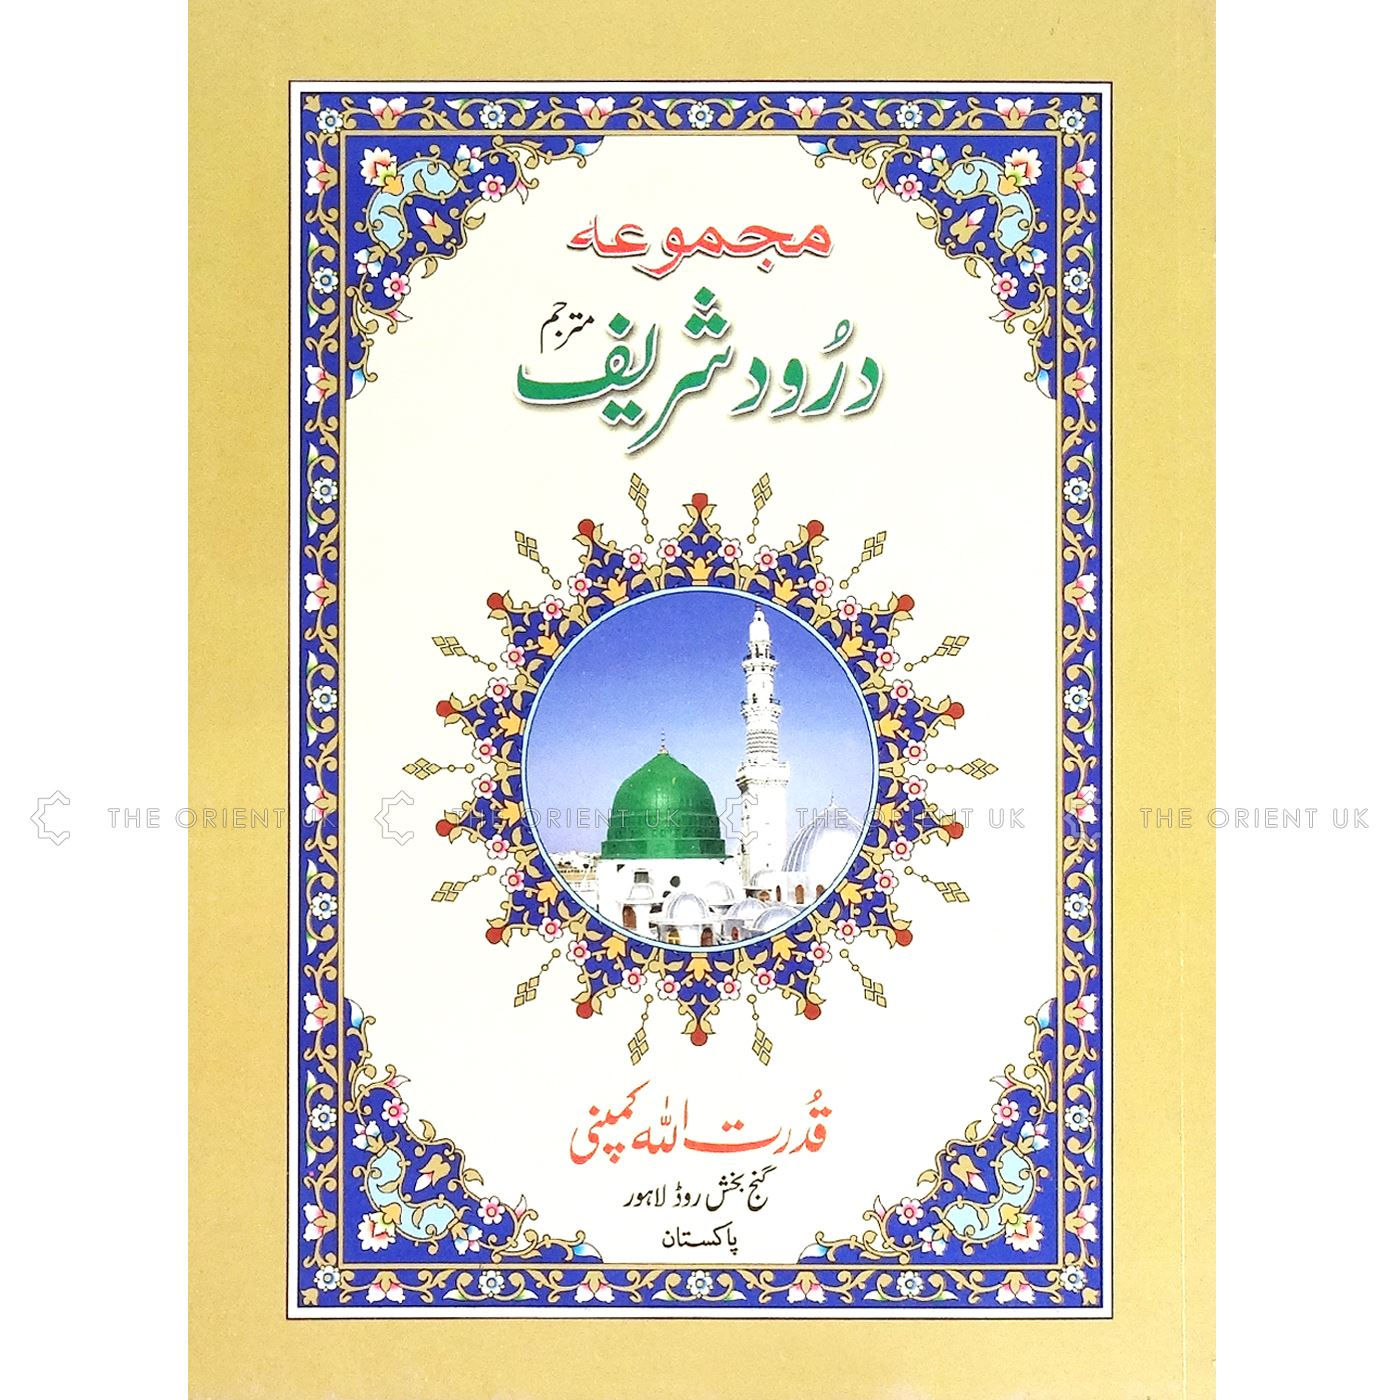 Details about Full Durood Sharif Urdu Translation 21 Droods Islamic Book 7  Lines Large 24x18cm